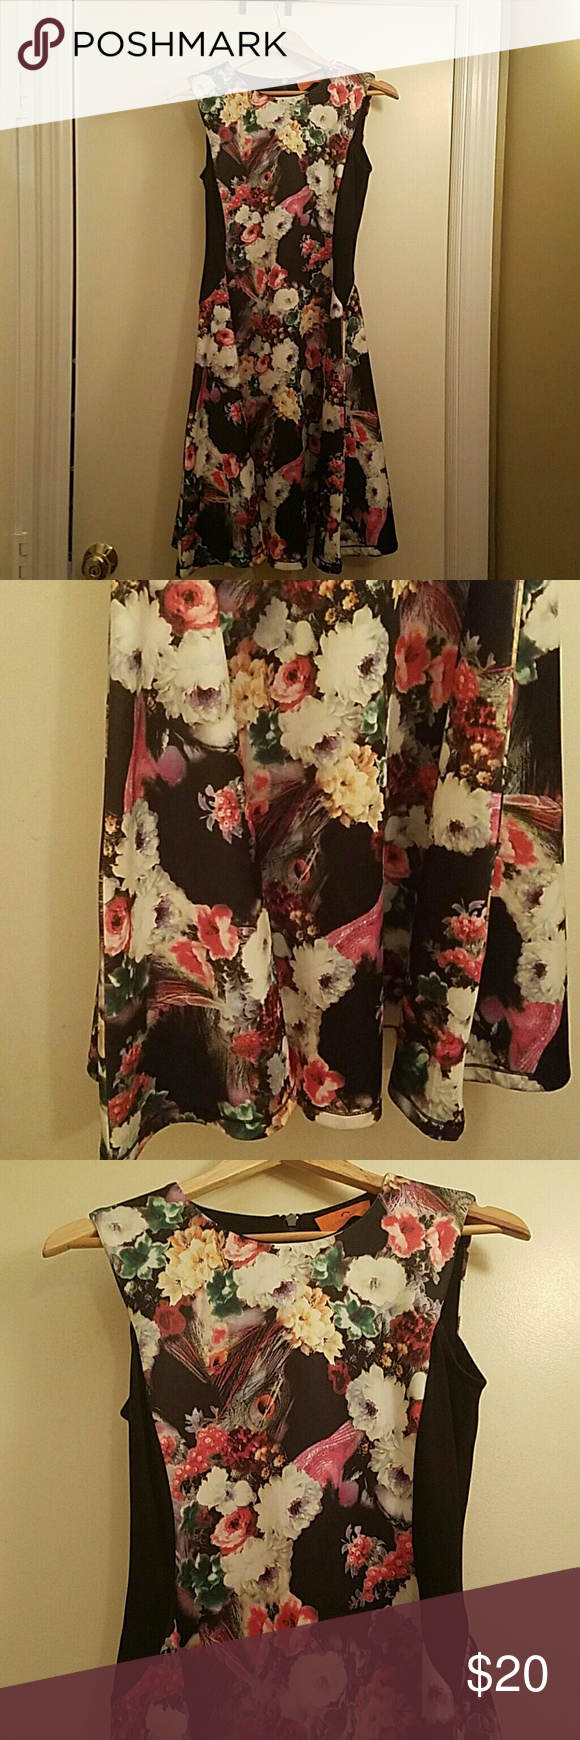 "New No Tag Patrizia Luca Floral Scuba Dress Small Brand new.  Never worn.  Fit and flare.  Stretchy. Exposed back zipper.  Unlined.  Sleeveless. Poly/Spandex. Floral and black. 17"" across chest, 15"" across waist, 37"" from shoulder to bottom hem.  I'm 5'3 and 125 pounds and this fits me. Patrizia Luca Dresses Midi"